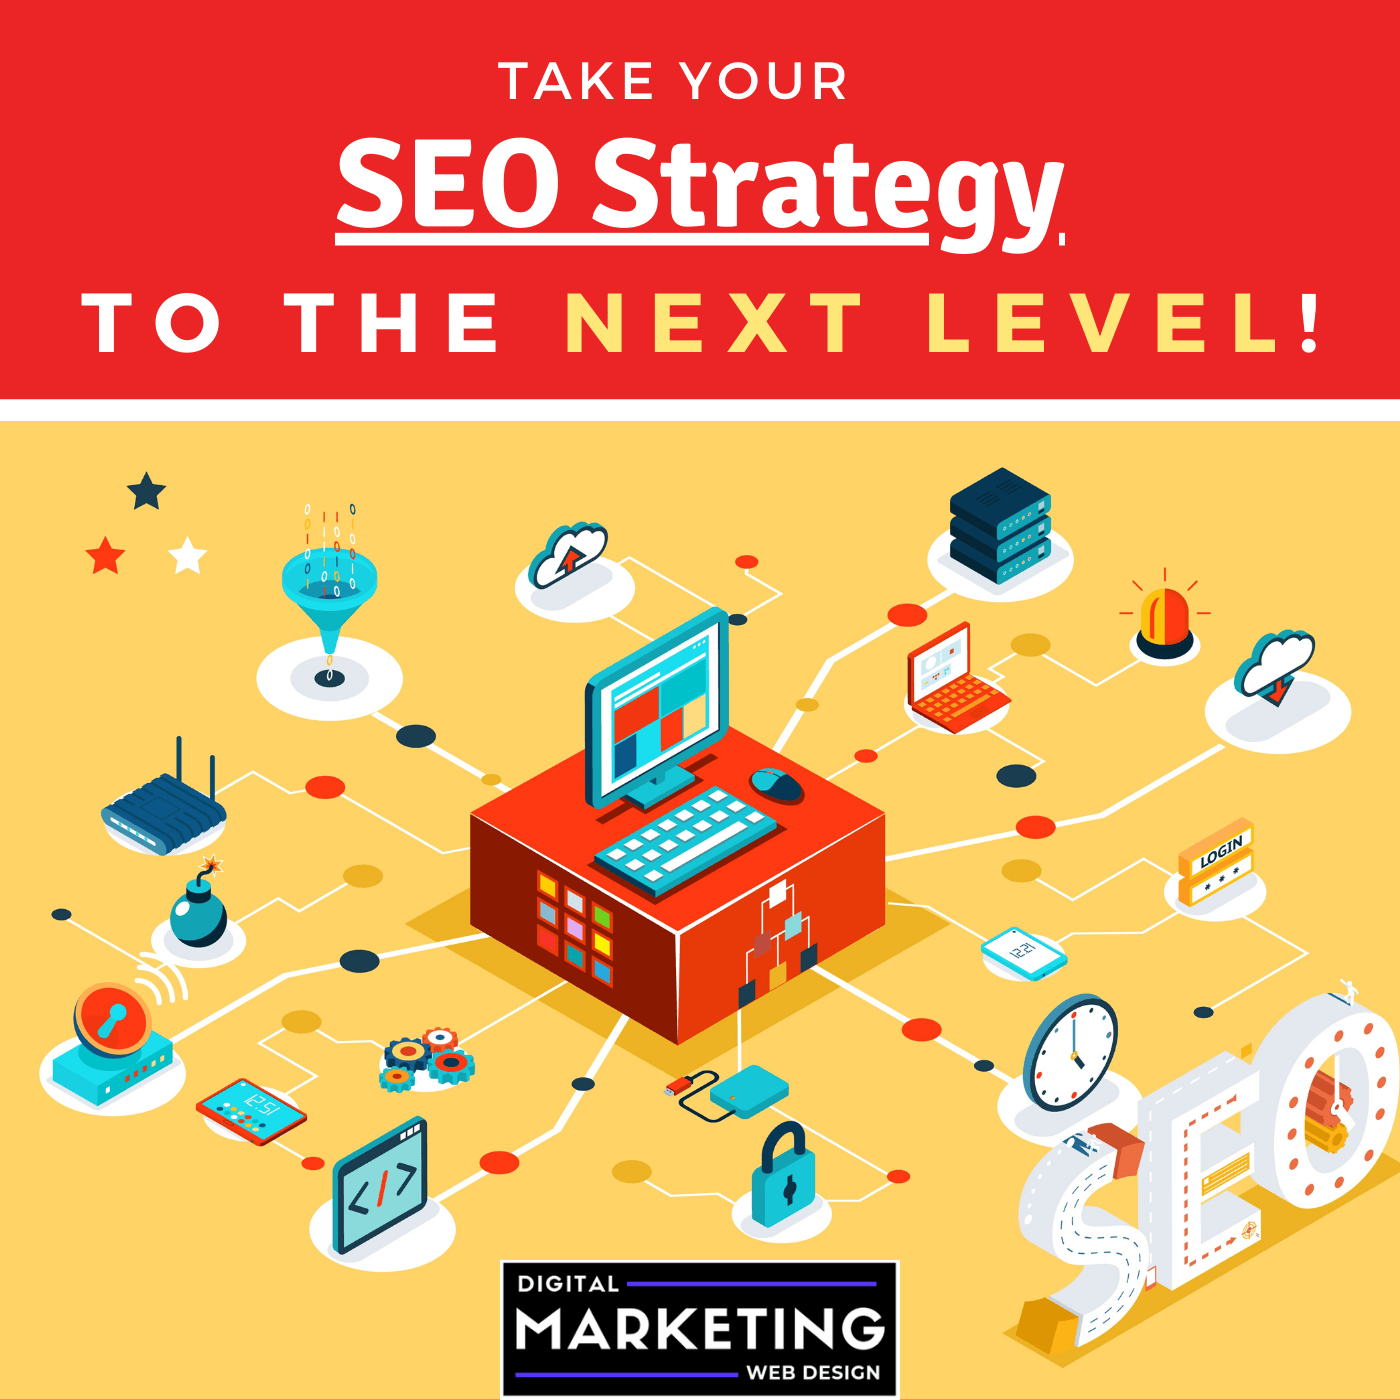 Take Your SEO Strategy To The Next Level - Buy Viral Niche Outreach Backlinks